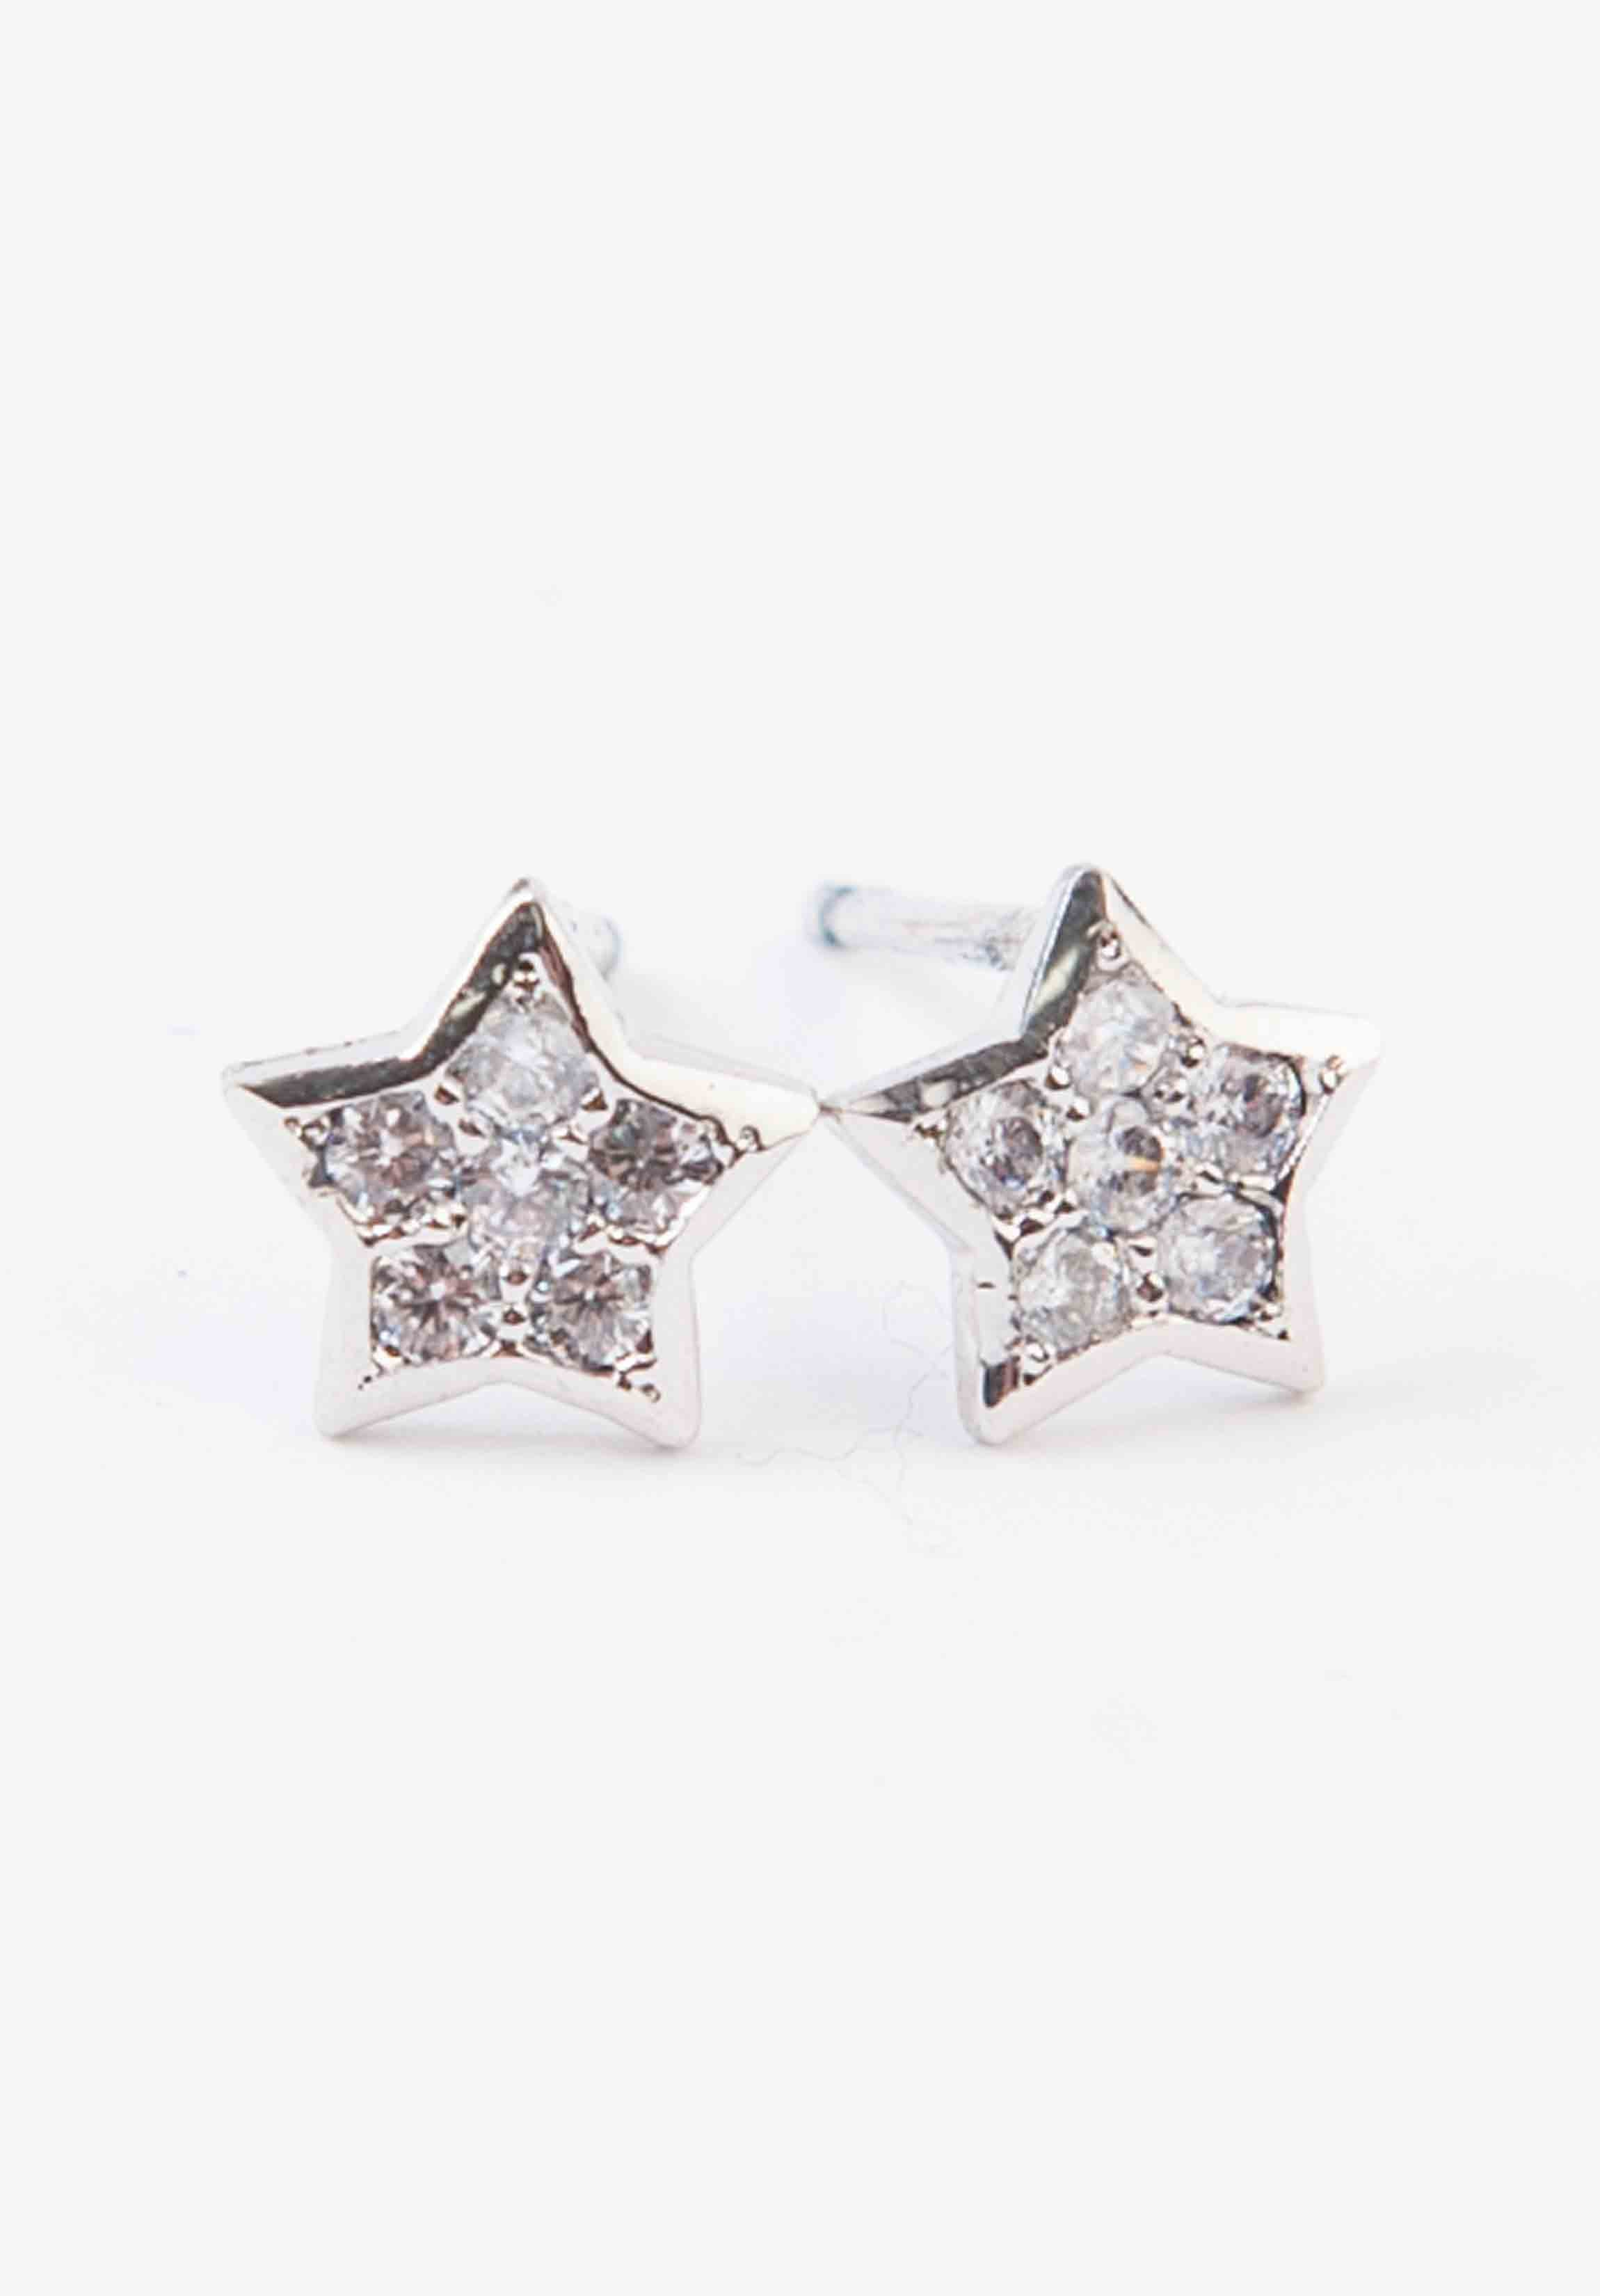 STAR STUDDED EARRINGS | WHITE GOLD